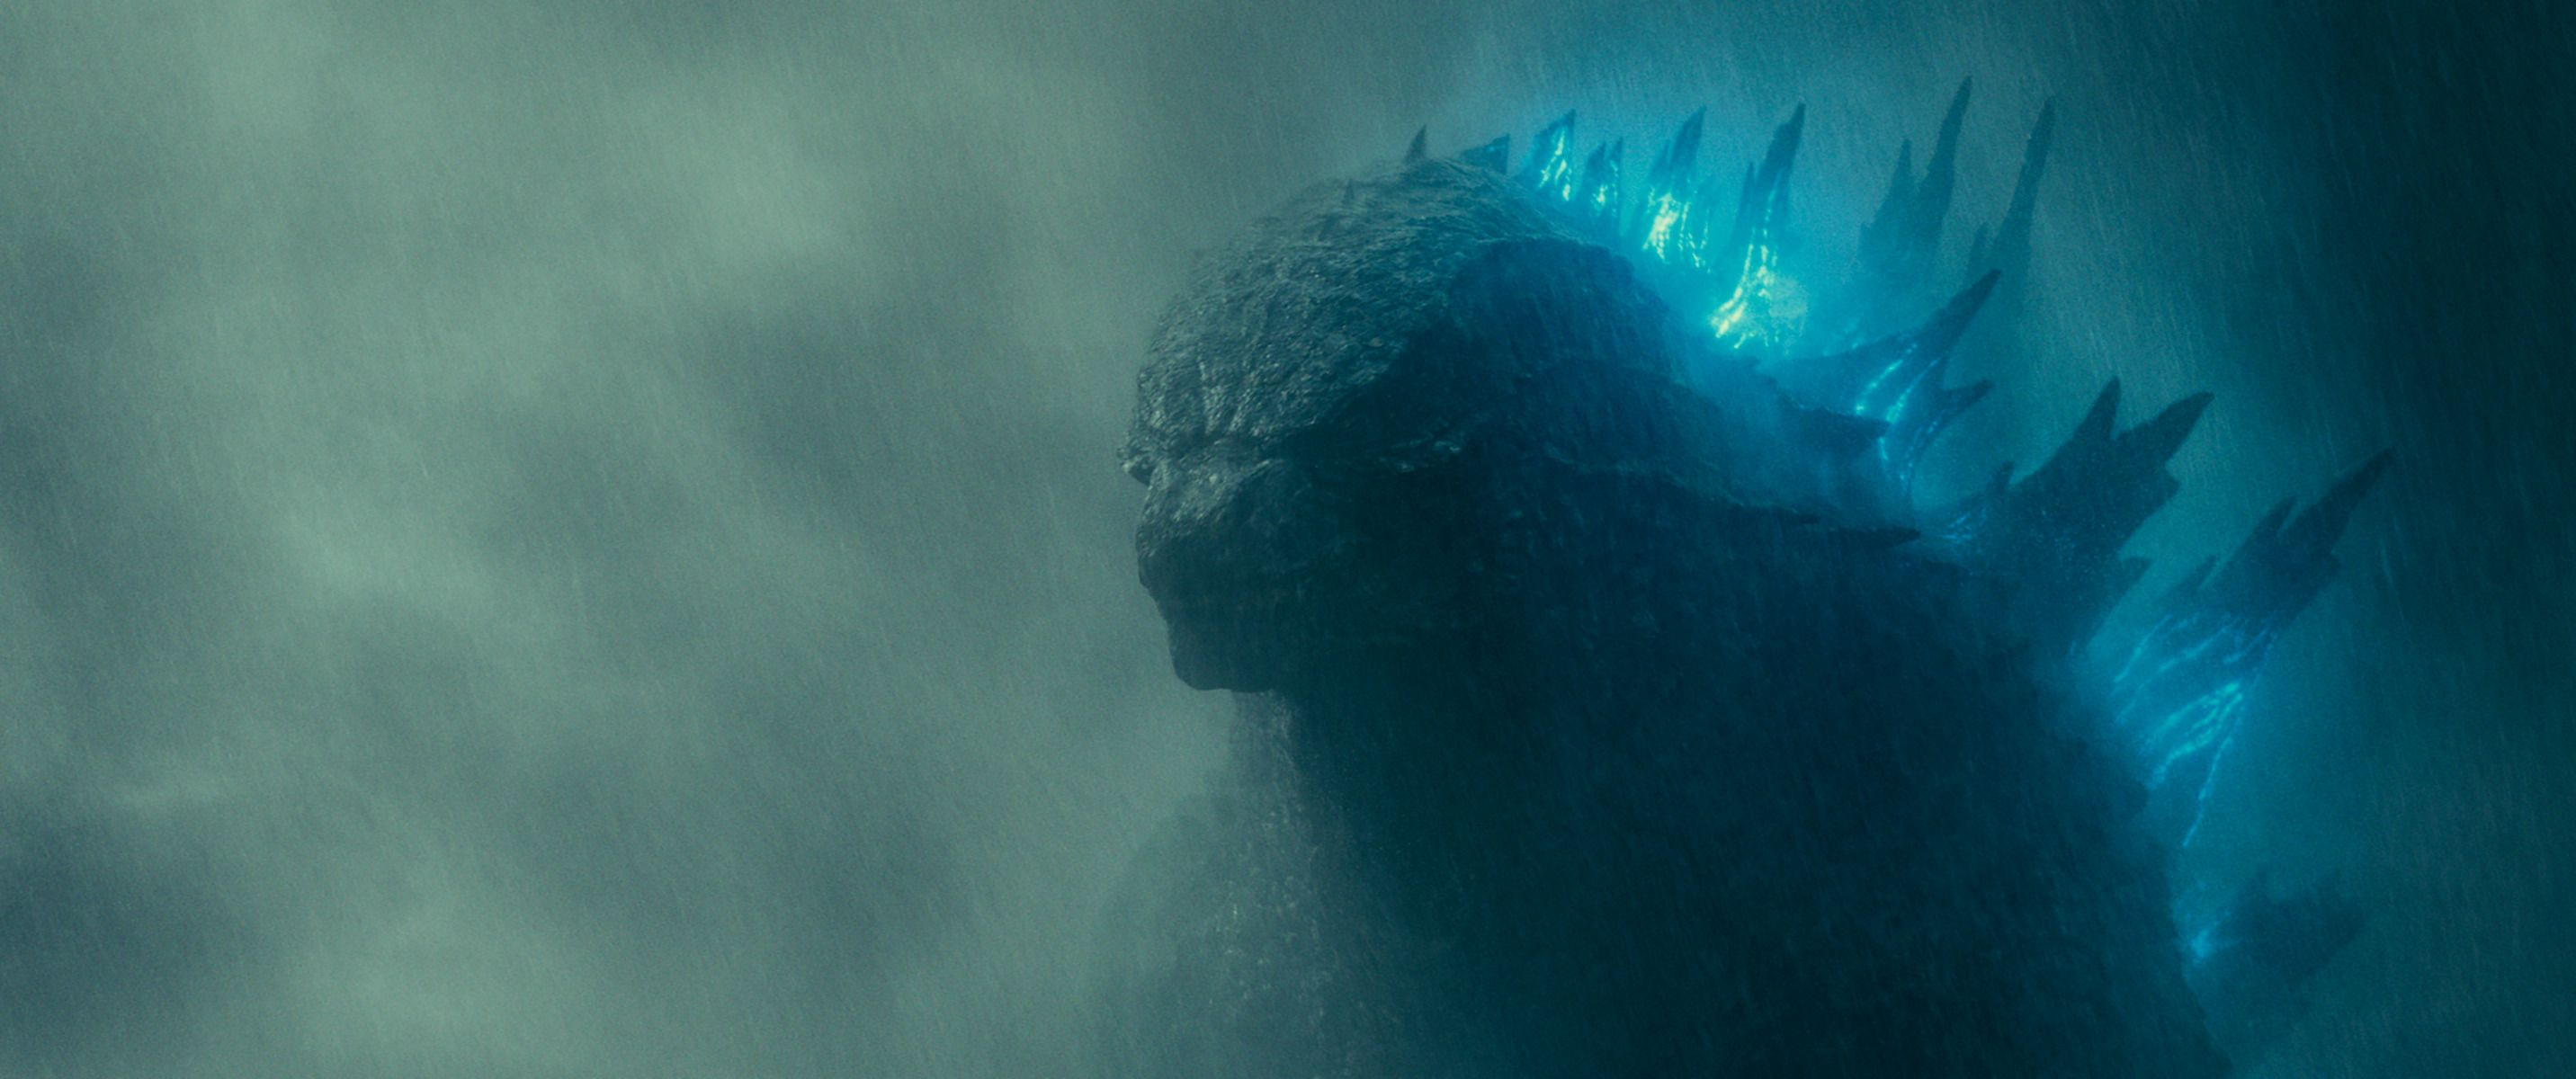 Godzilla King of the Monsters ending - How Godzilla: King of the